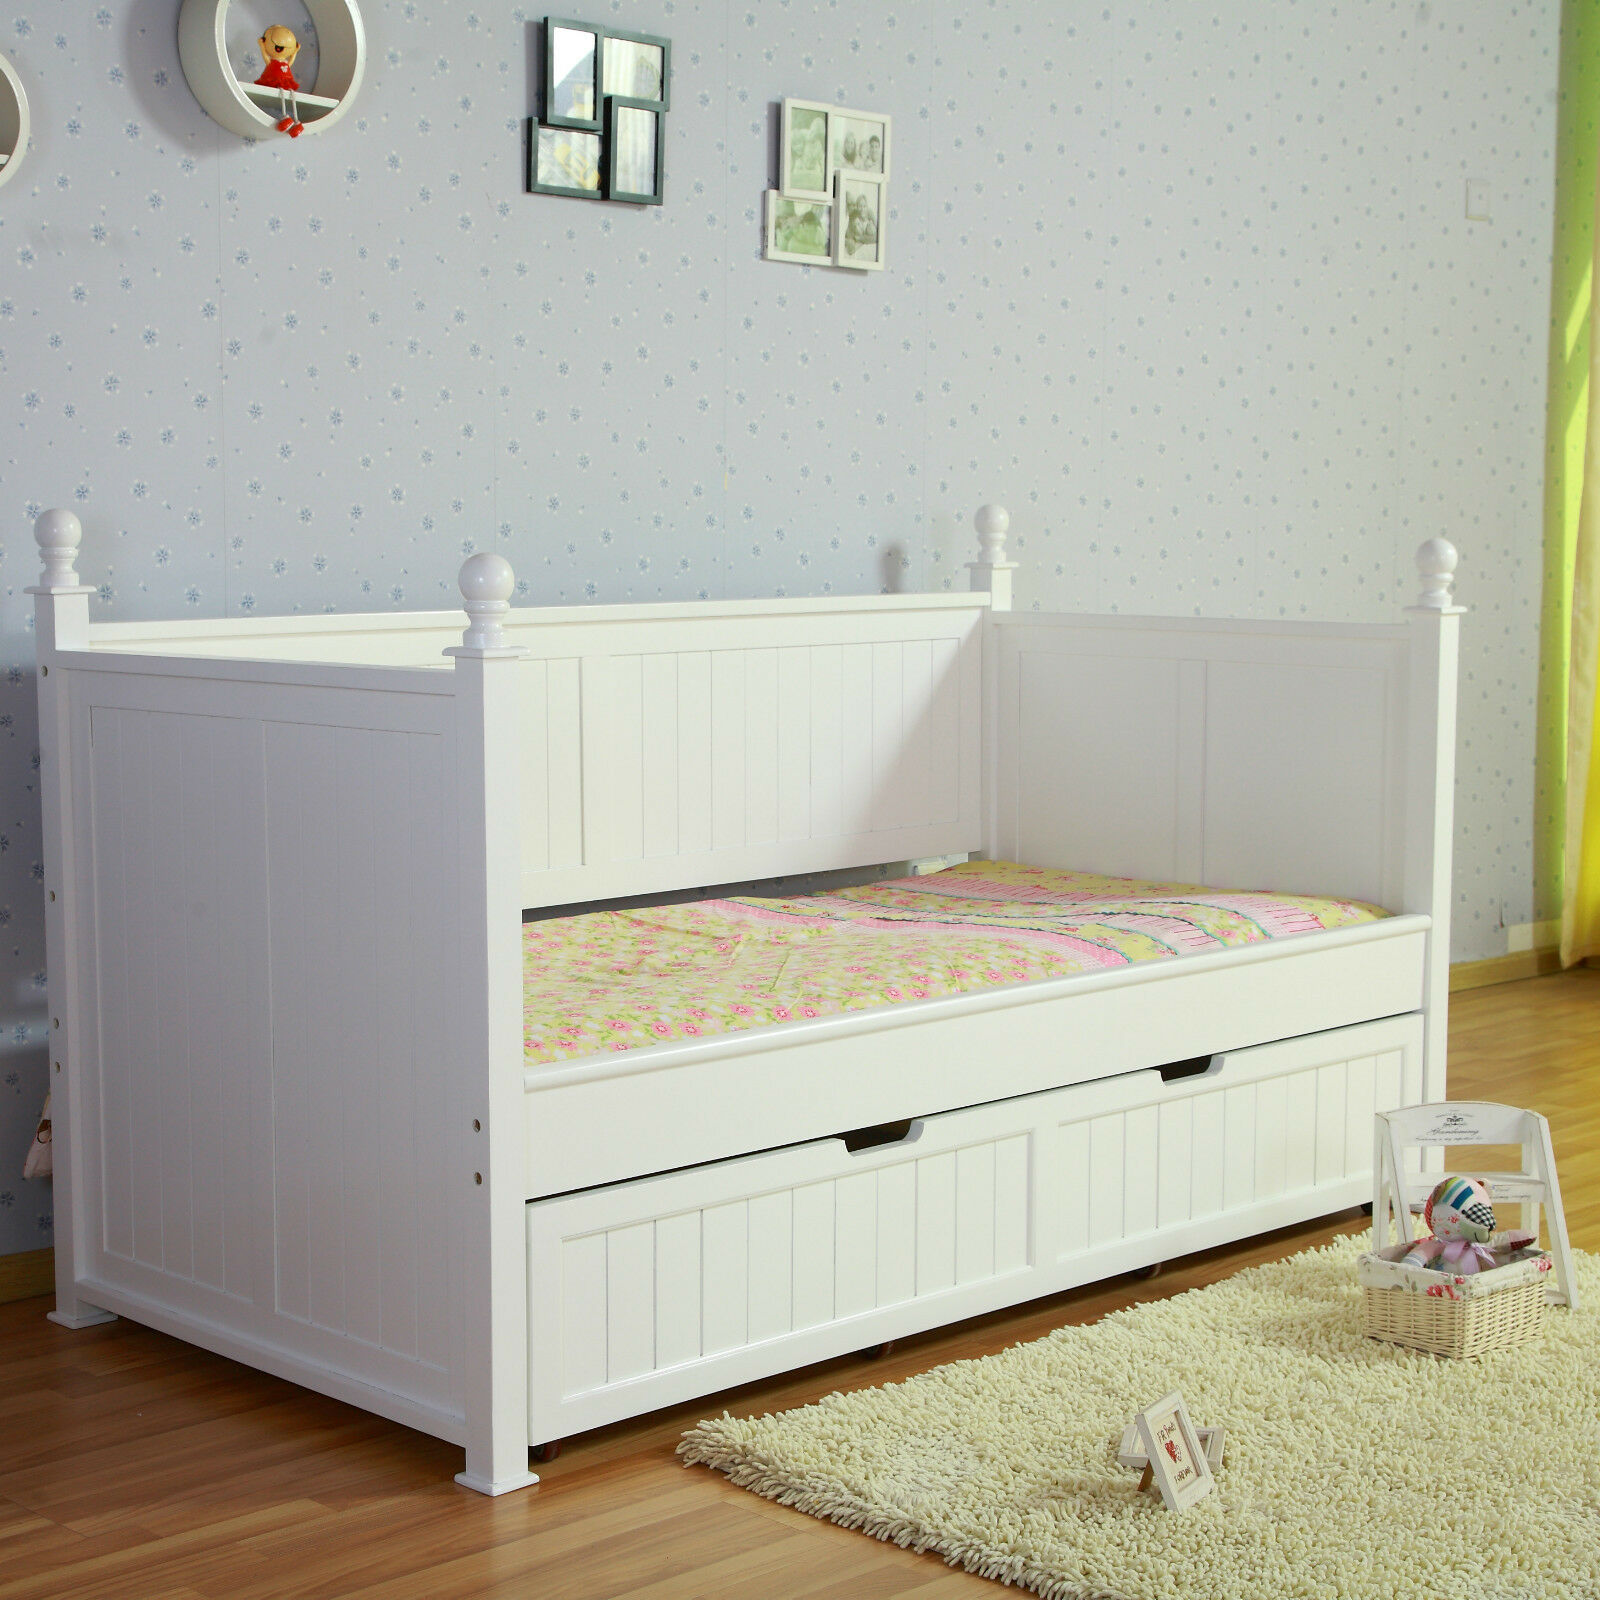 Single Day Bed Kids European Design Siesta White Nz Pine Girls Princess